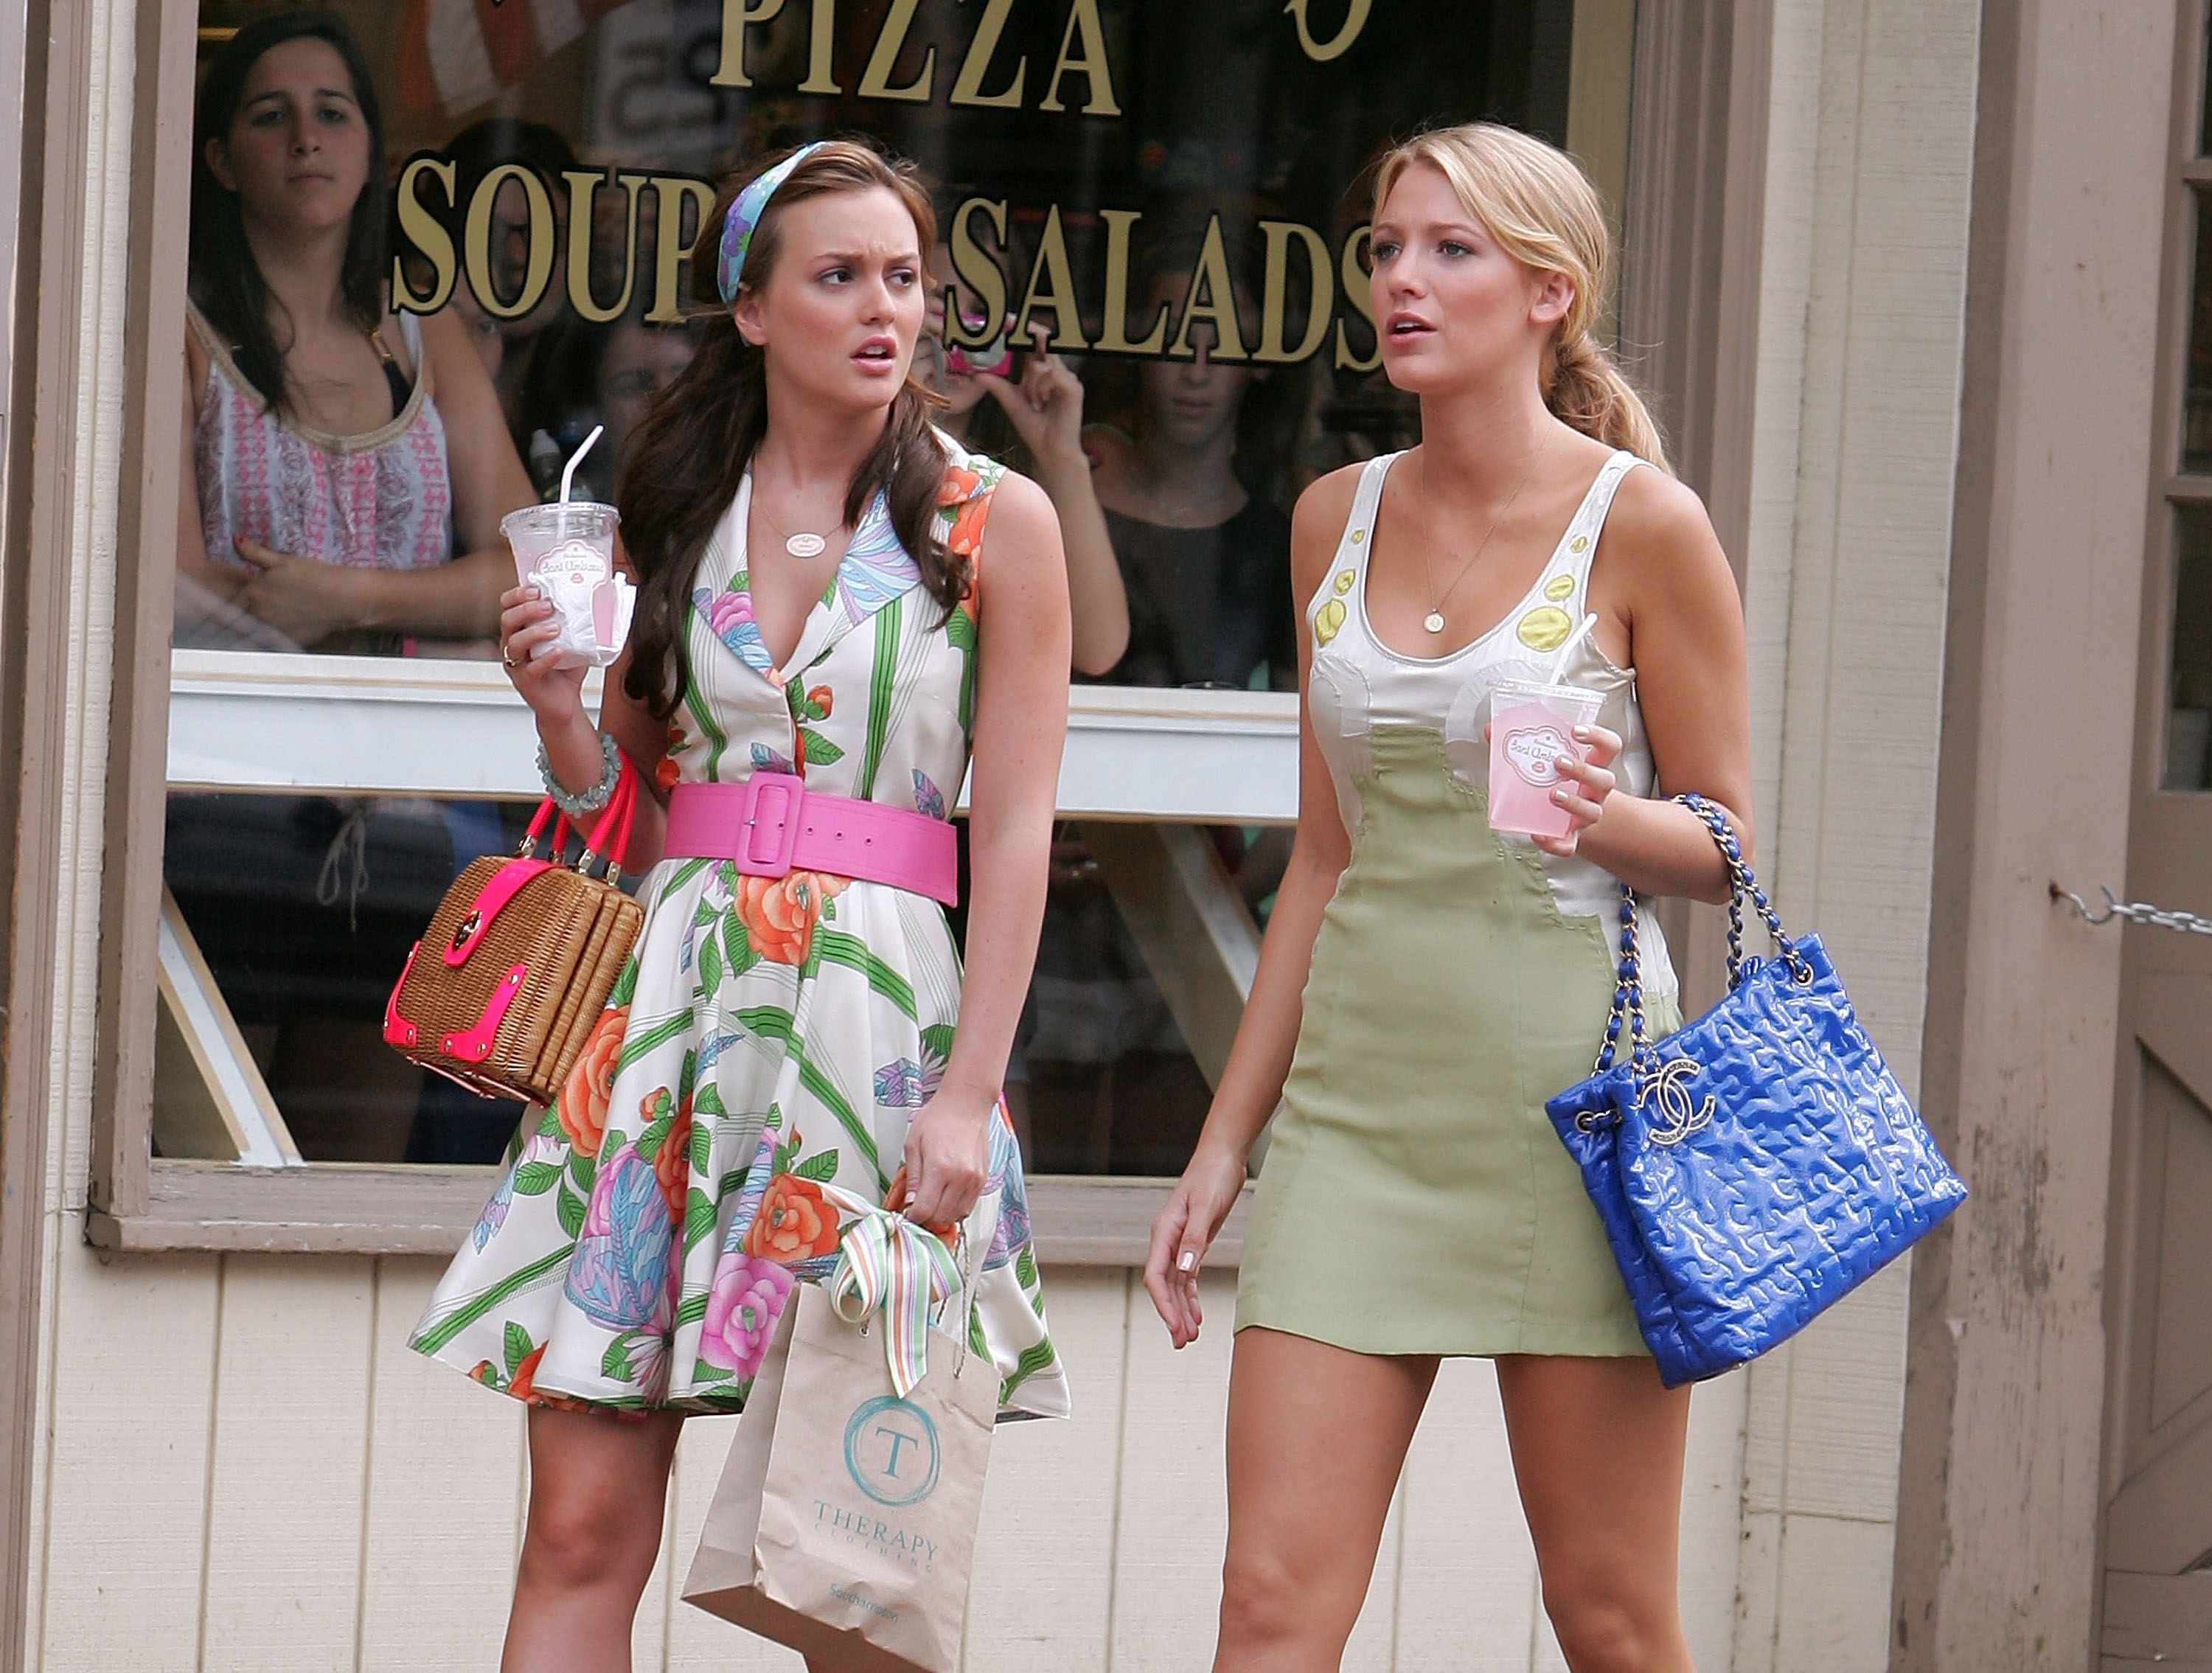 c62397d50 Some of the Best Gossip Girl Fashion Moments – 1000MonkeysOnline